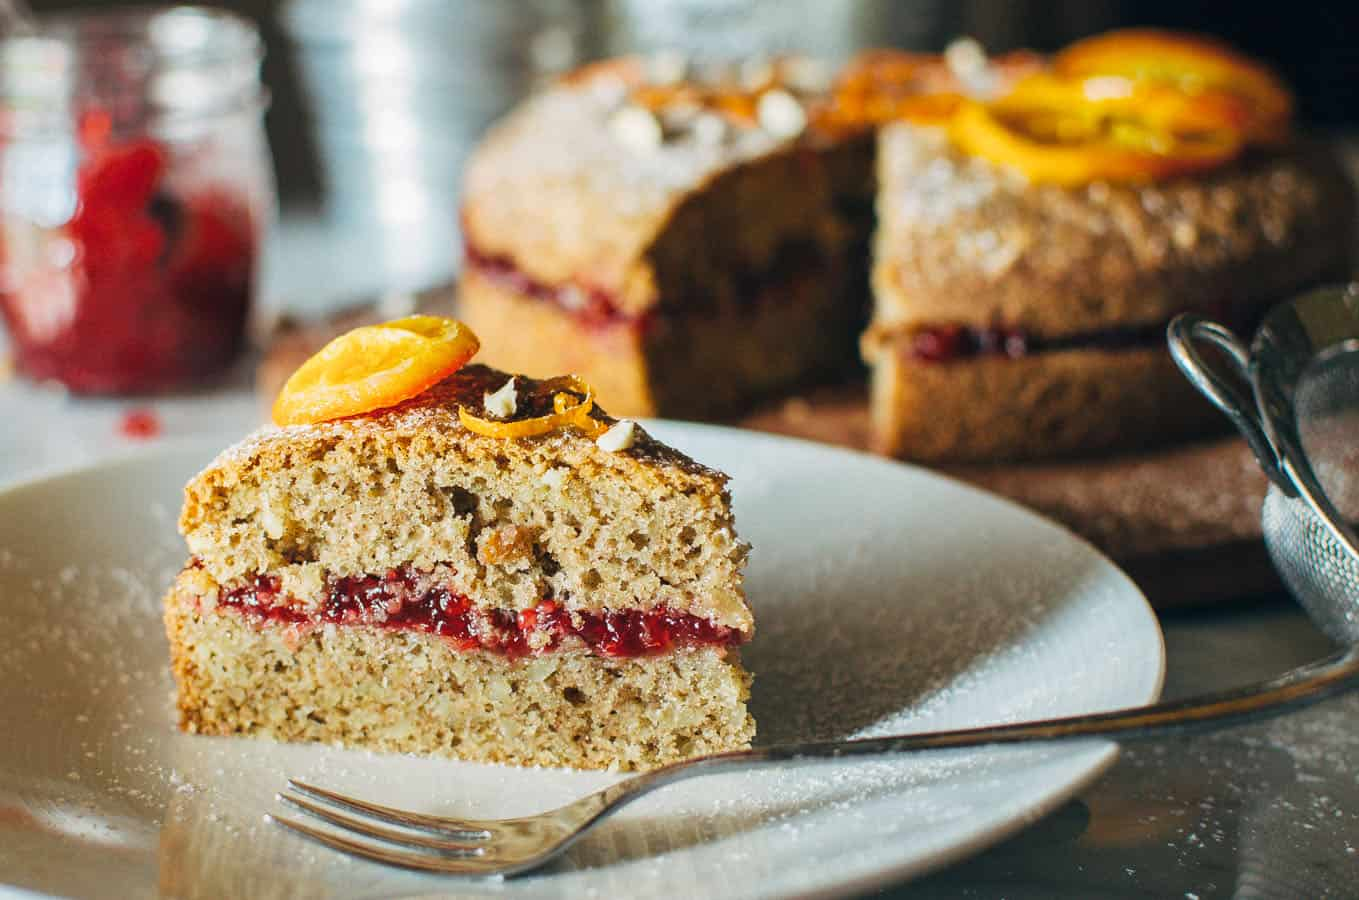 Gluten-free Red Berry Almond Buckwheat Cake | Very EATalian